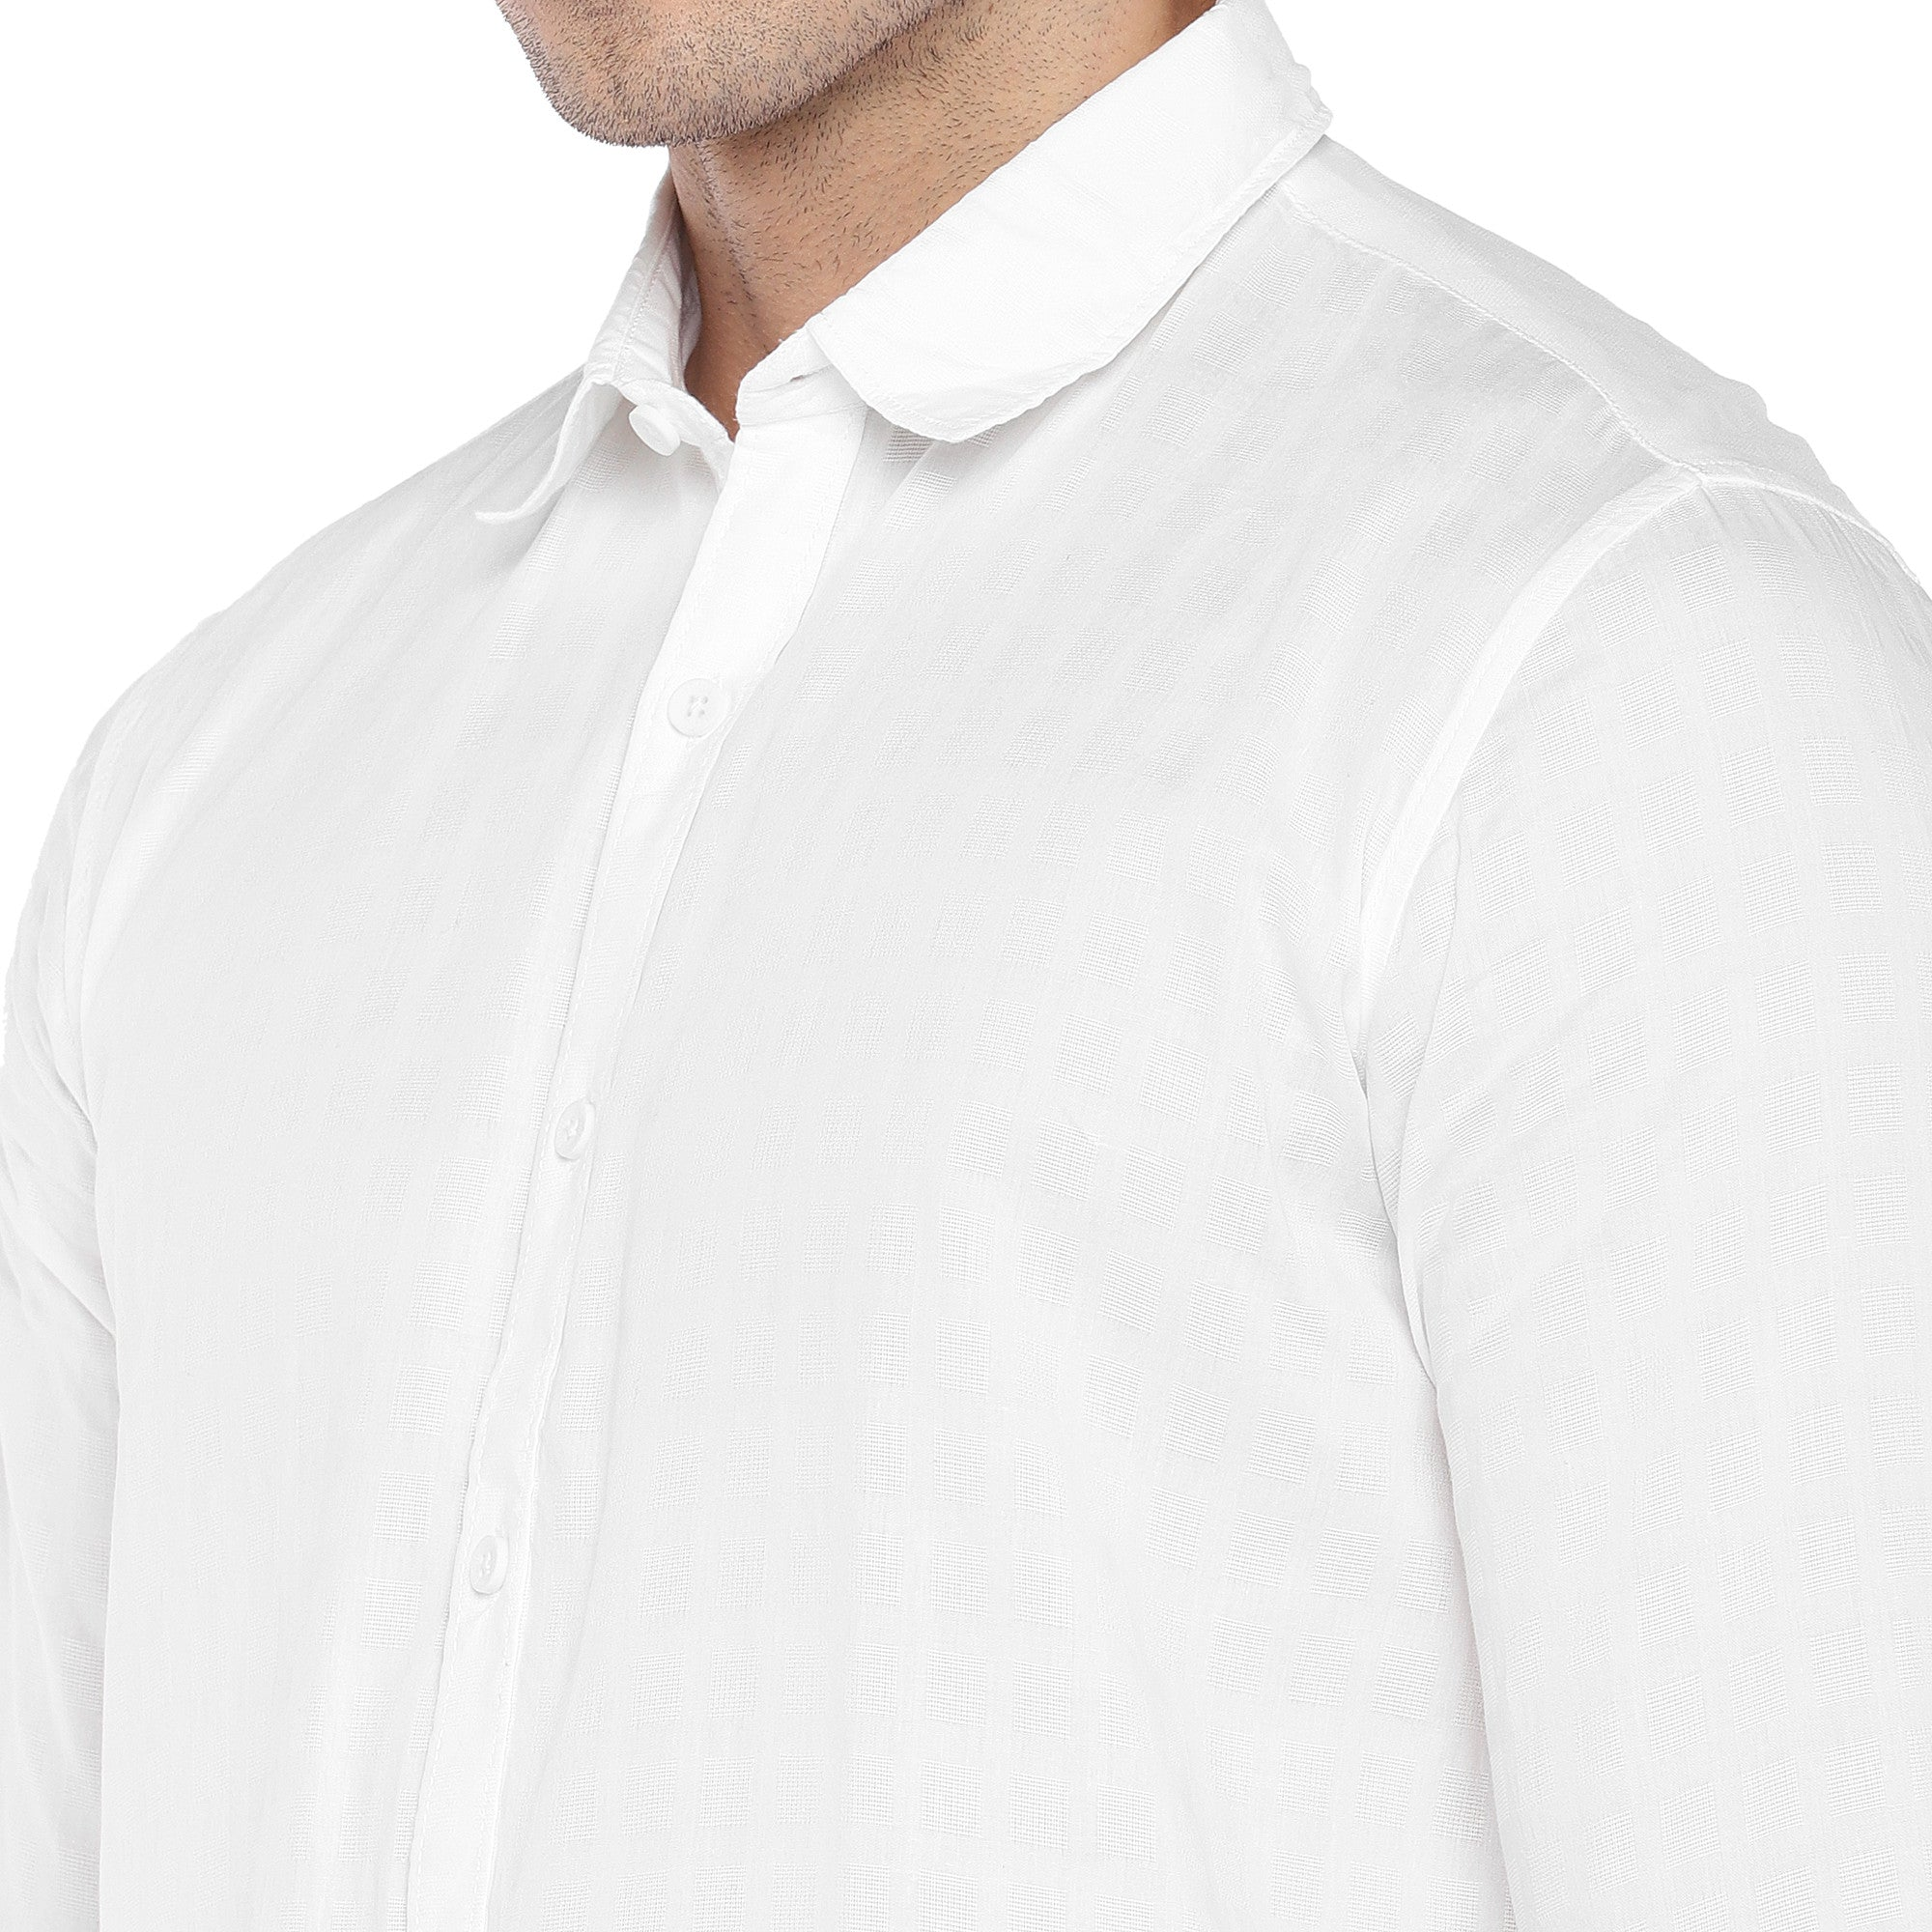 White Regular Fit Solid Casual Shirt-5